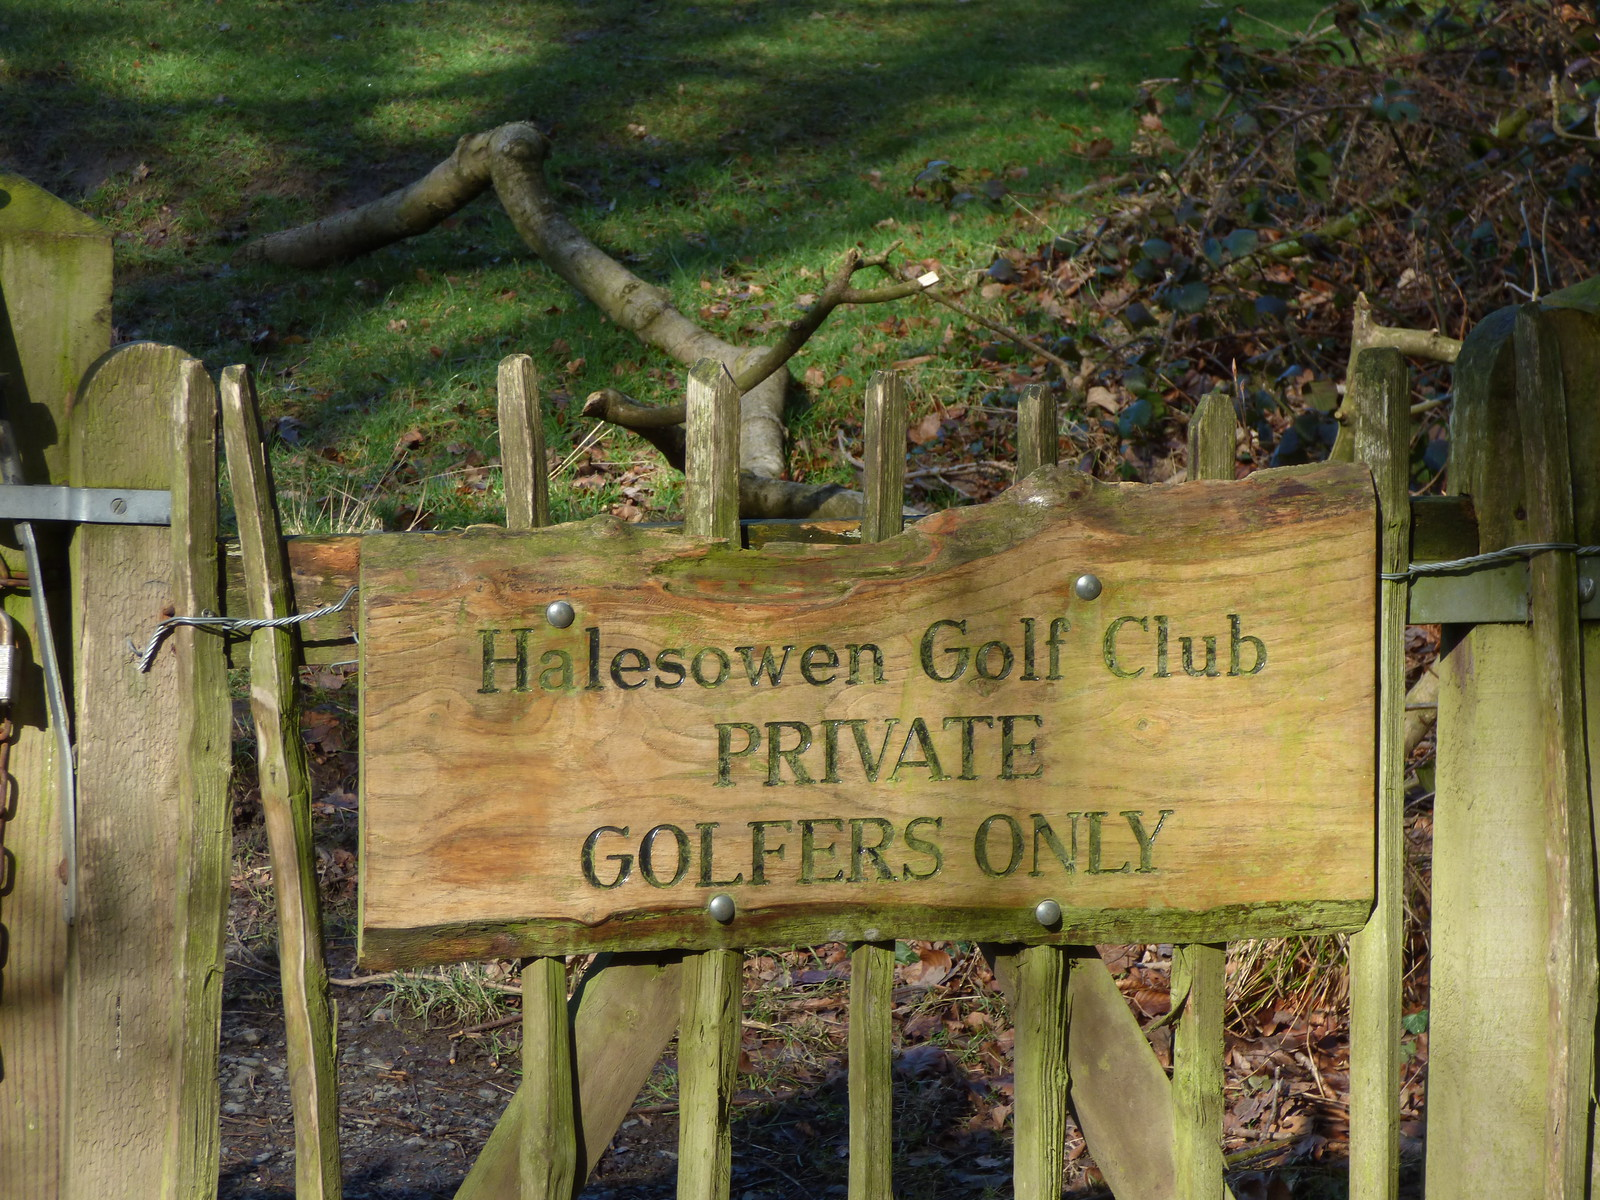 Halesowen Golf Club - Leasowes Park - sign - Halesowen Golf Club Private Golfers Only | by ell brown